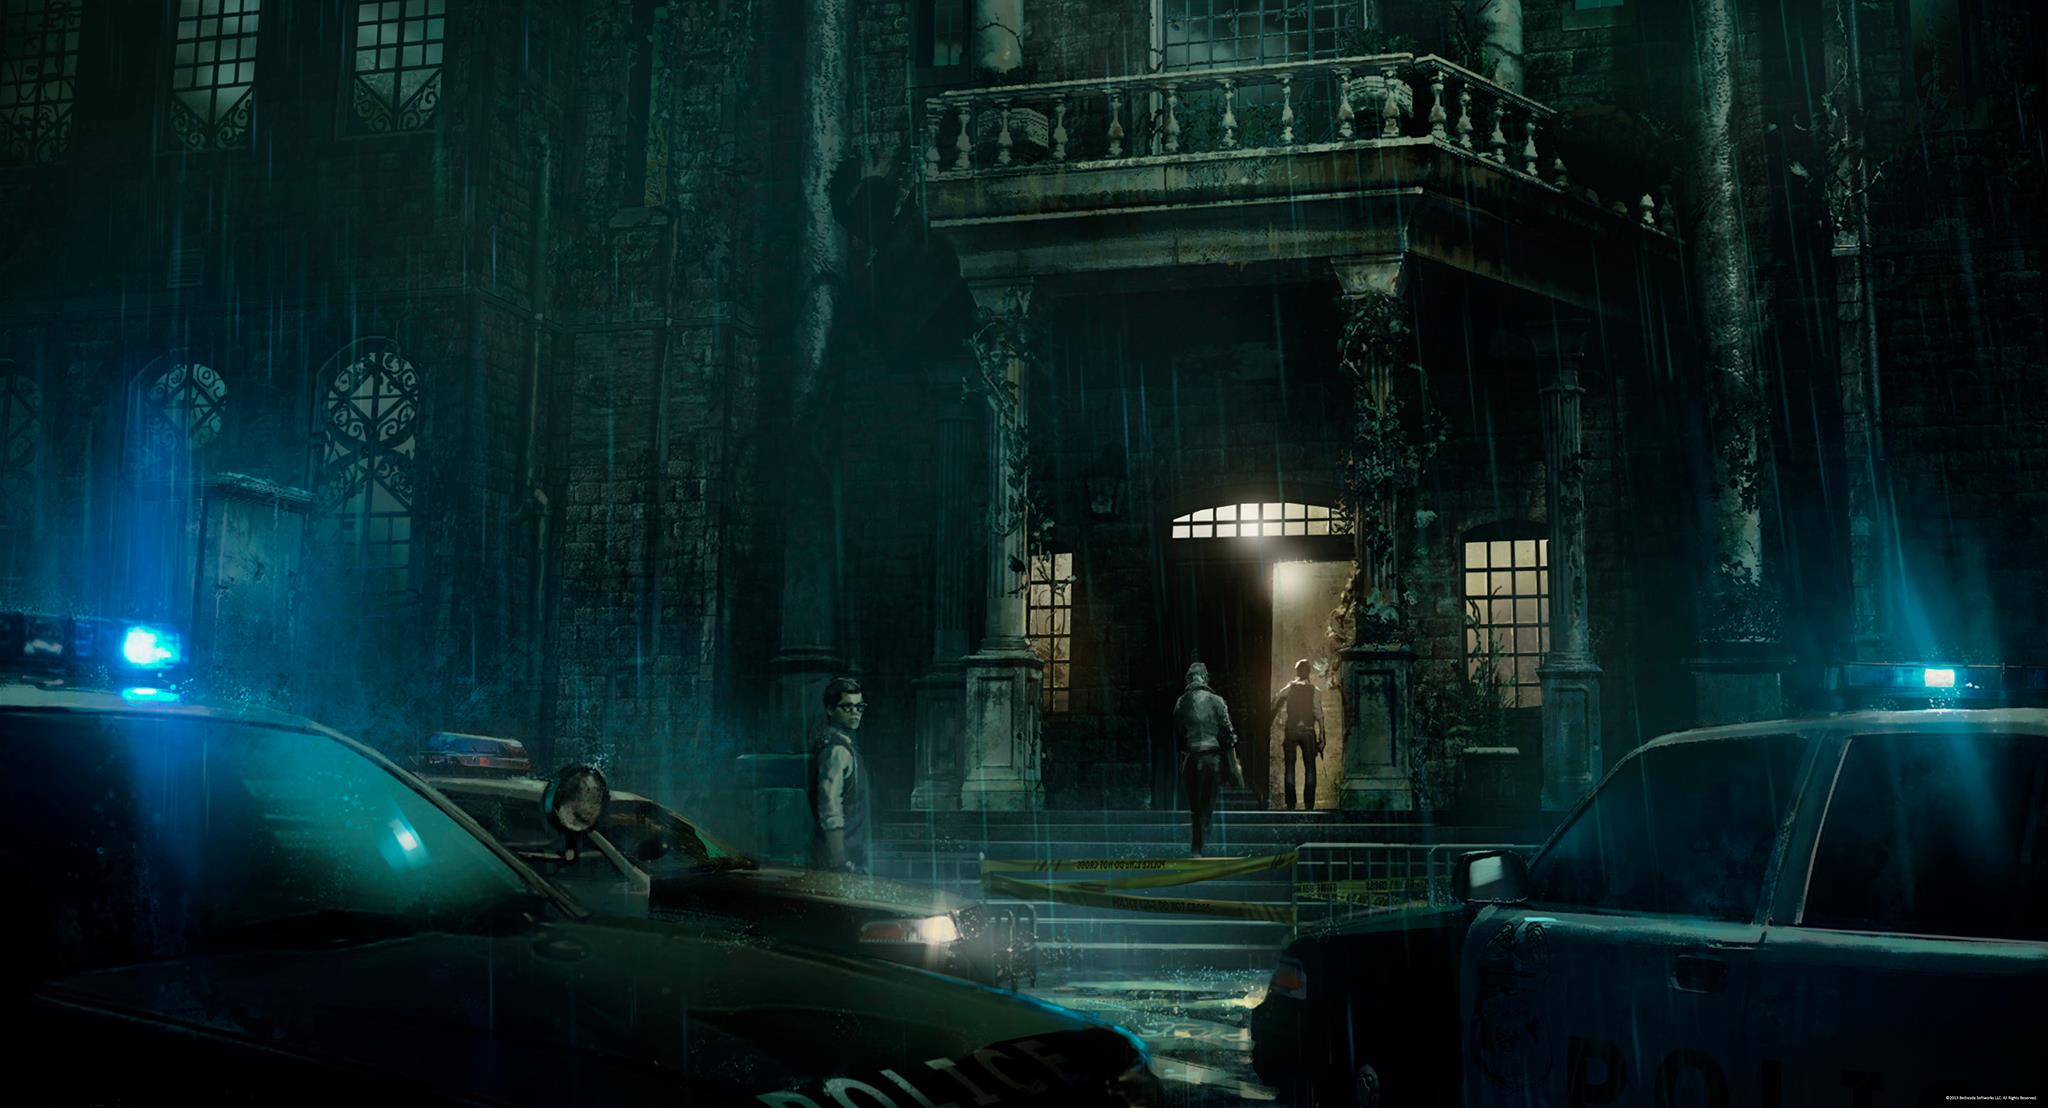 The Evil Within' Screens And Concept Art Emerge - Bloody Disgusting